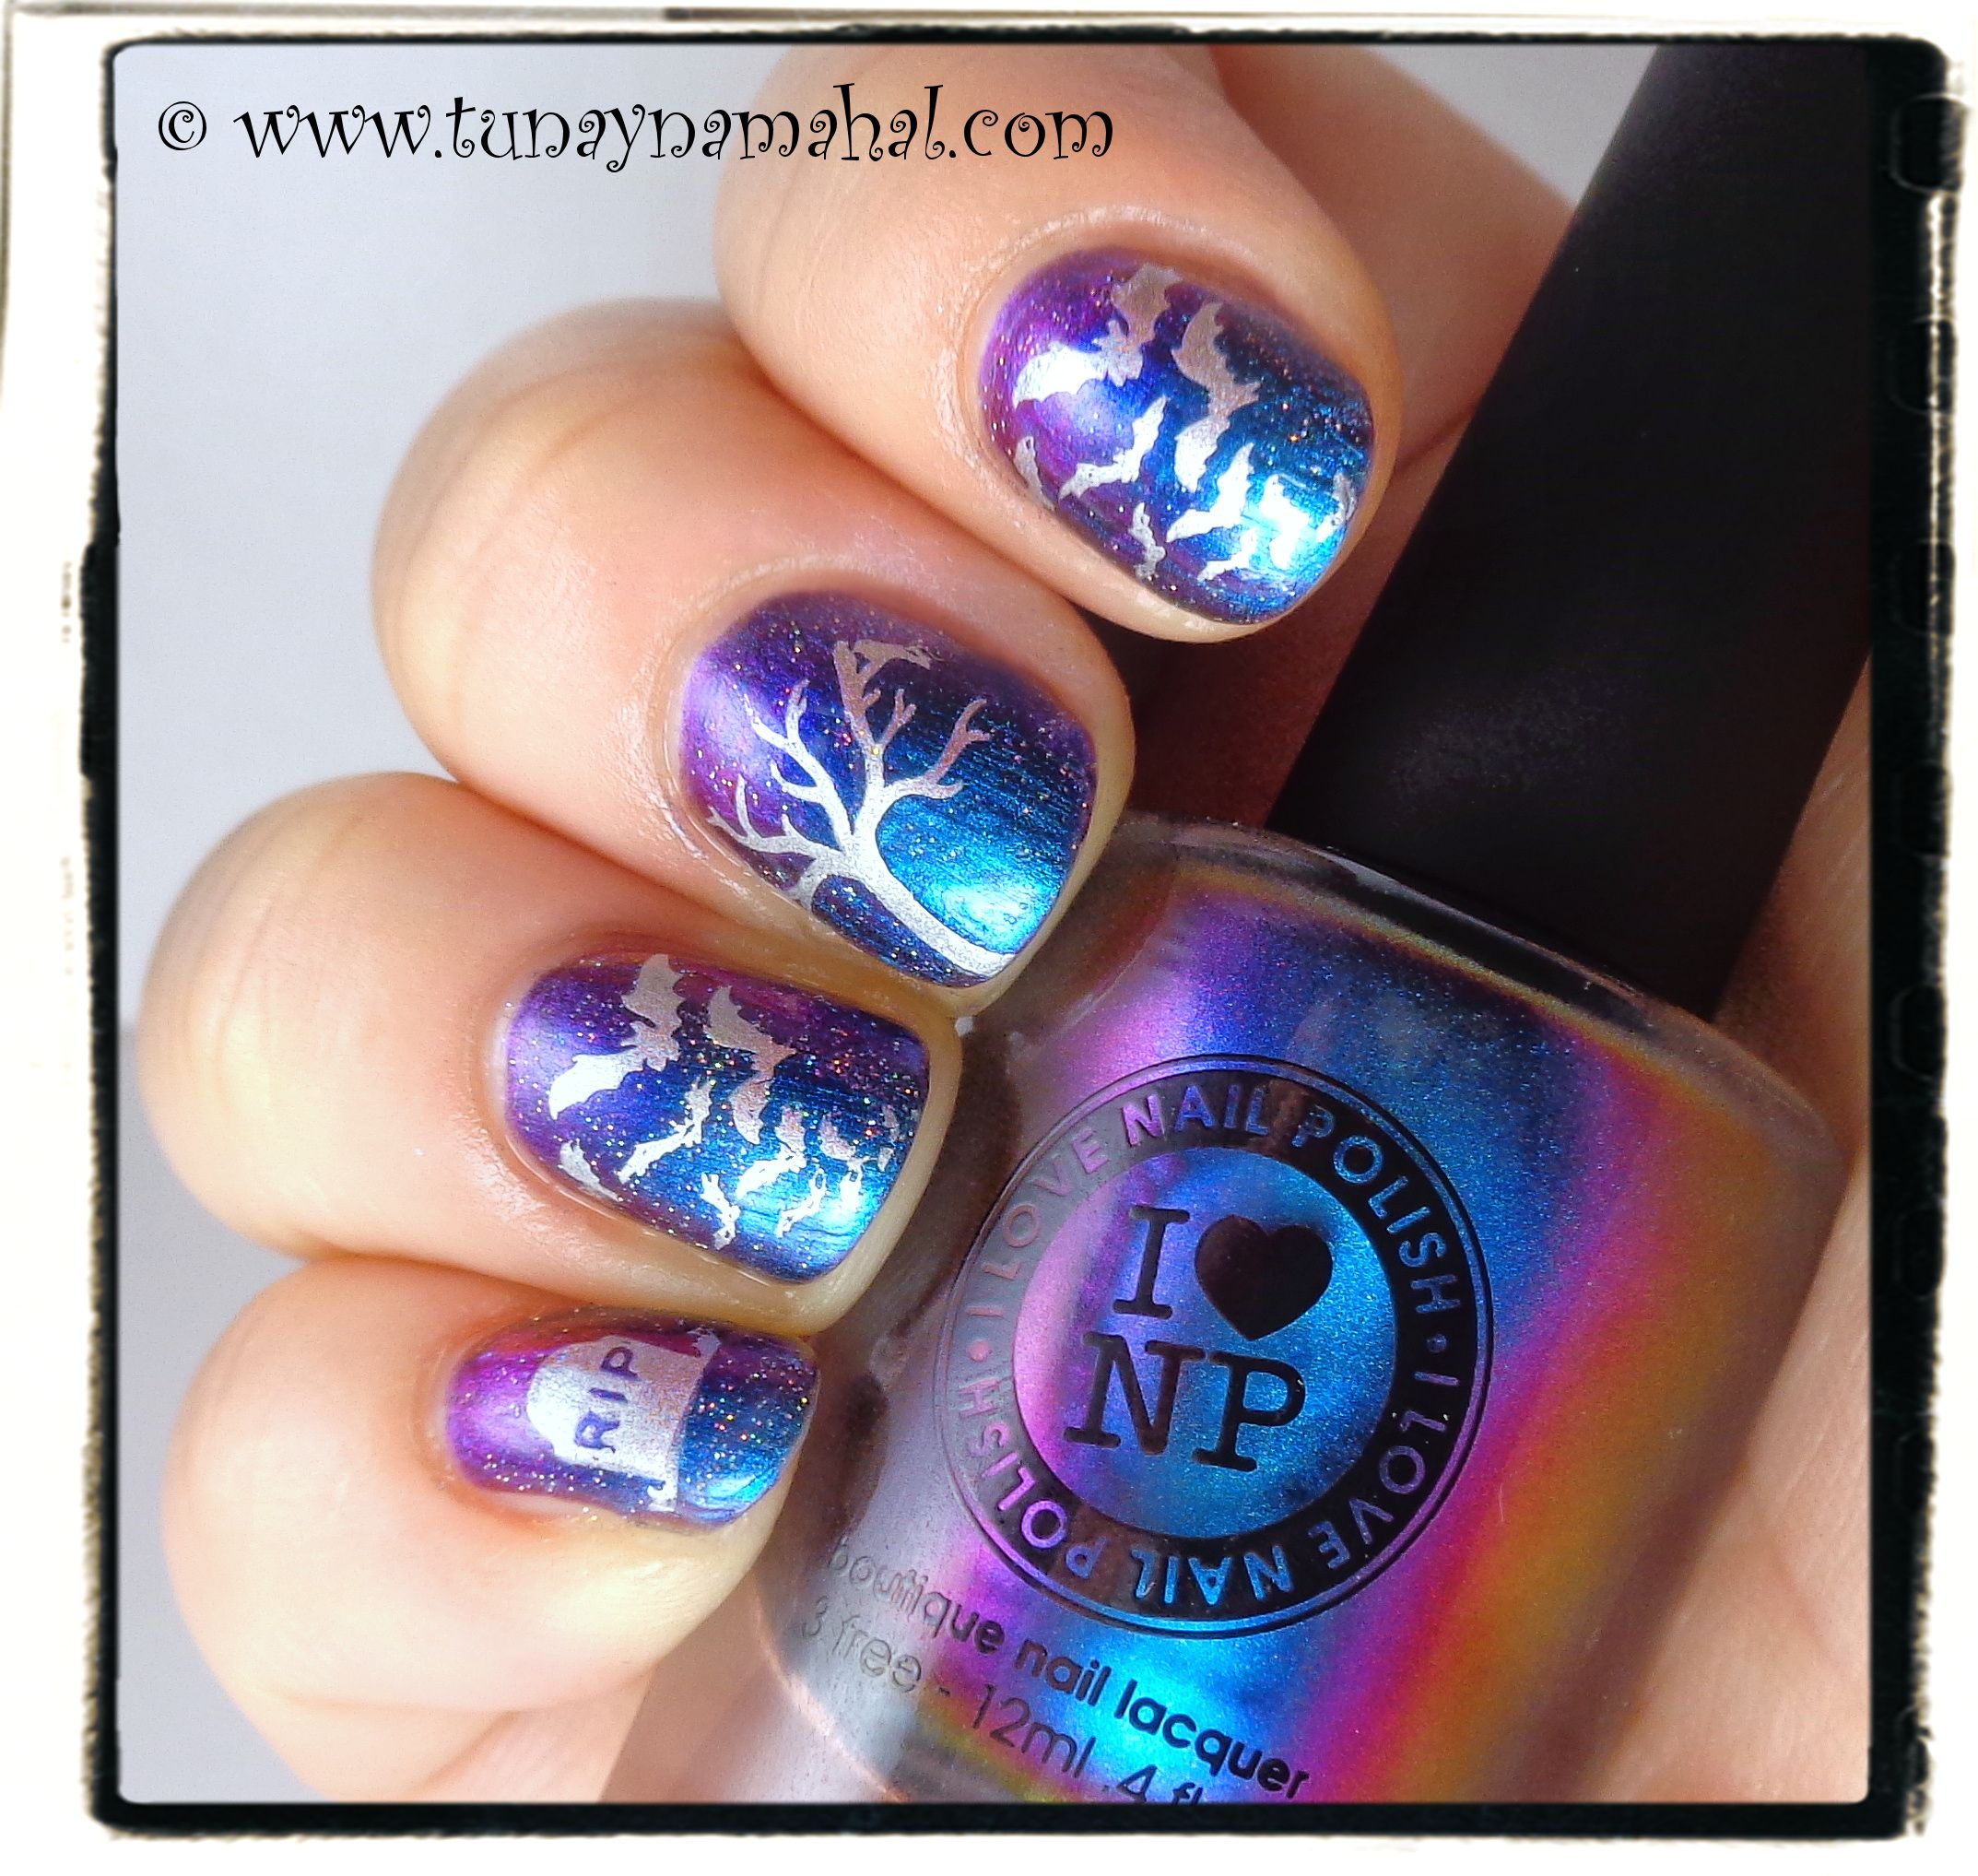 Walgreens Halloween Nail Polish: Halloween Nails With I Love Nail Polish, Ultra Chrome